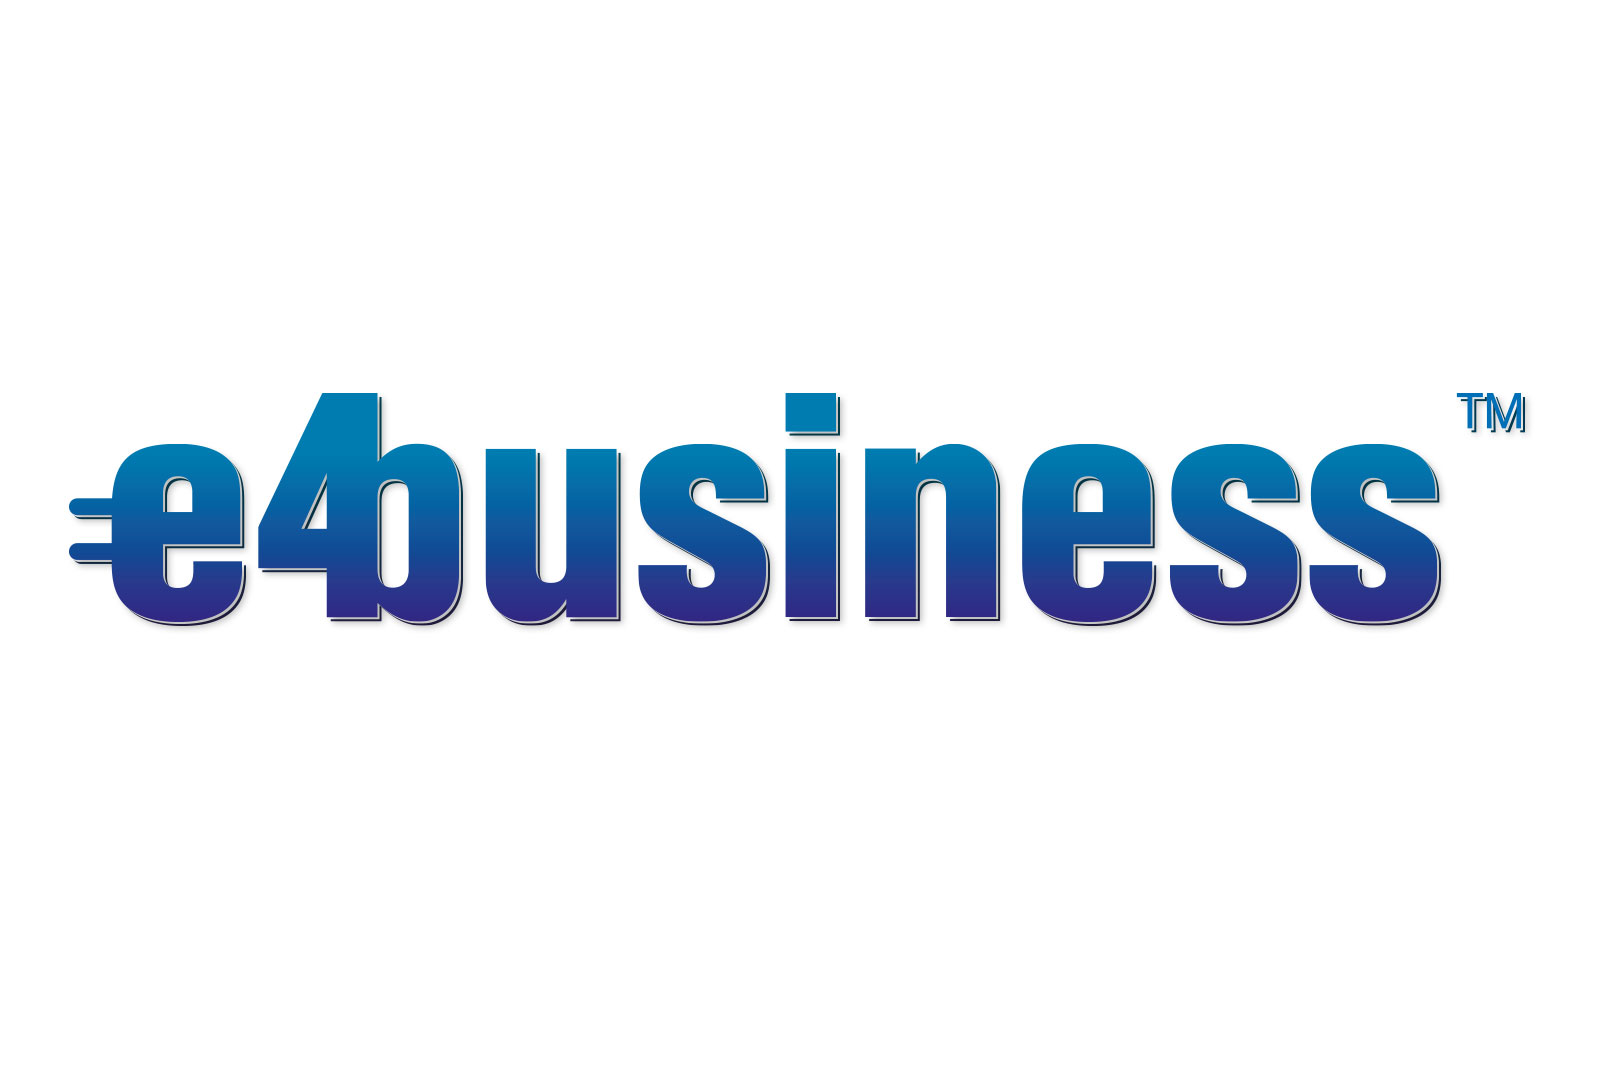 e4business-logo.jpg